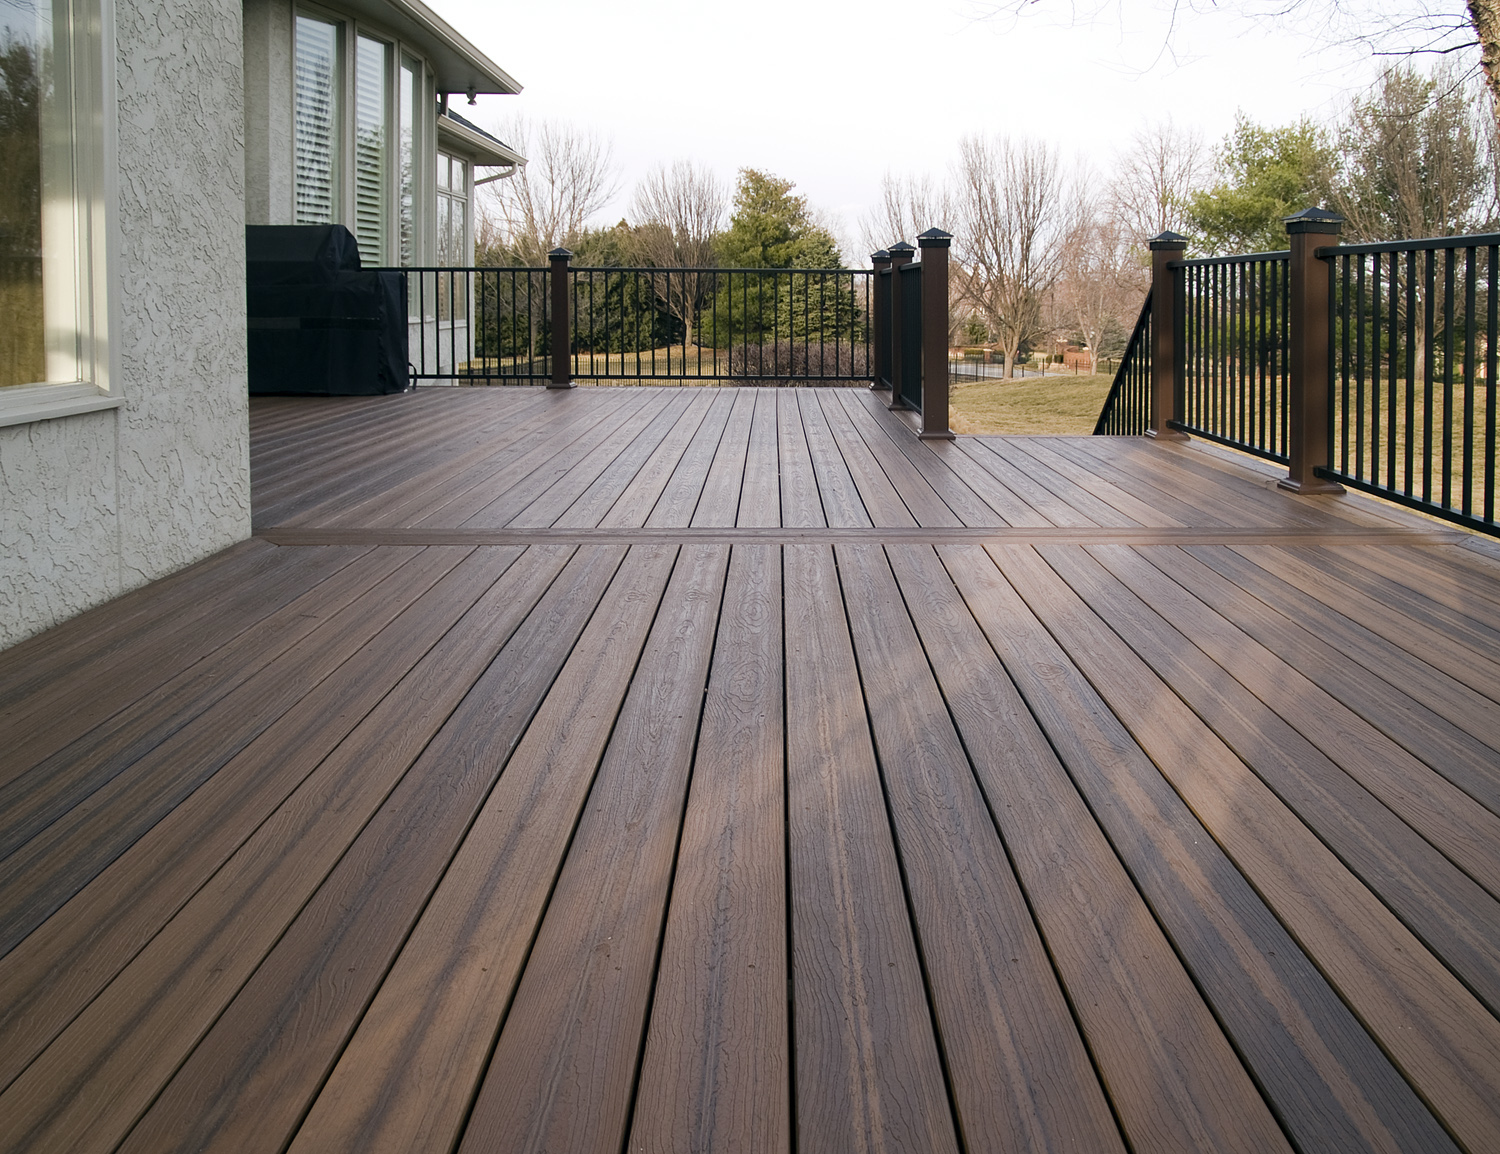 Saddlebrown Azek Decking Plus Black Railing For Deck Ideas